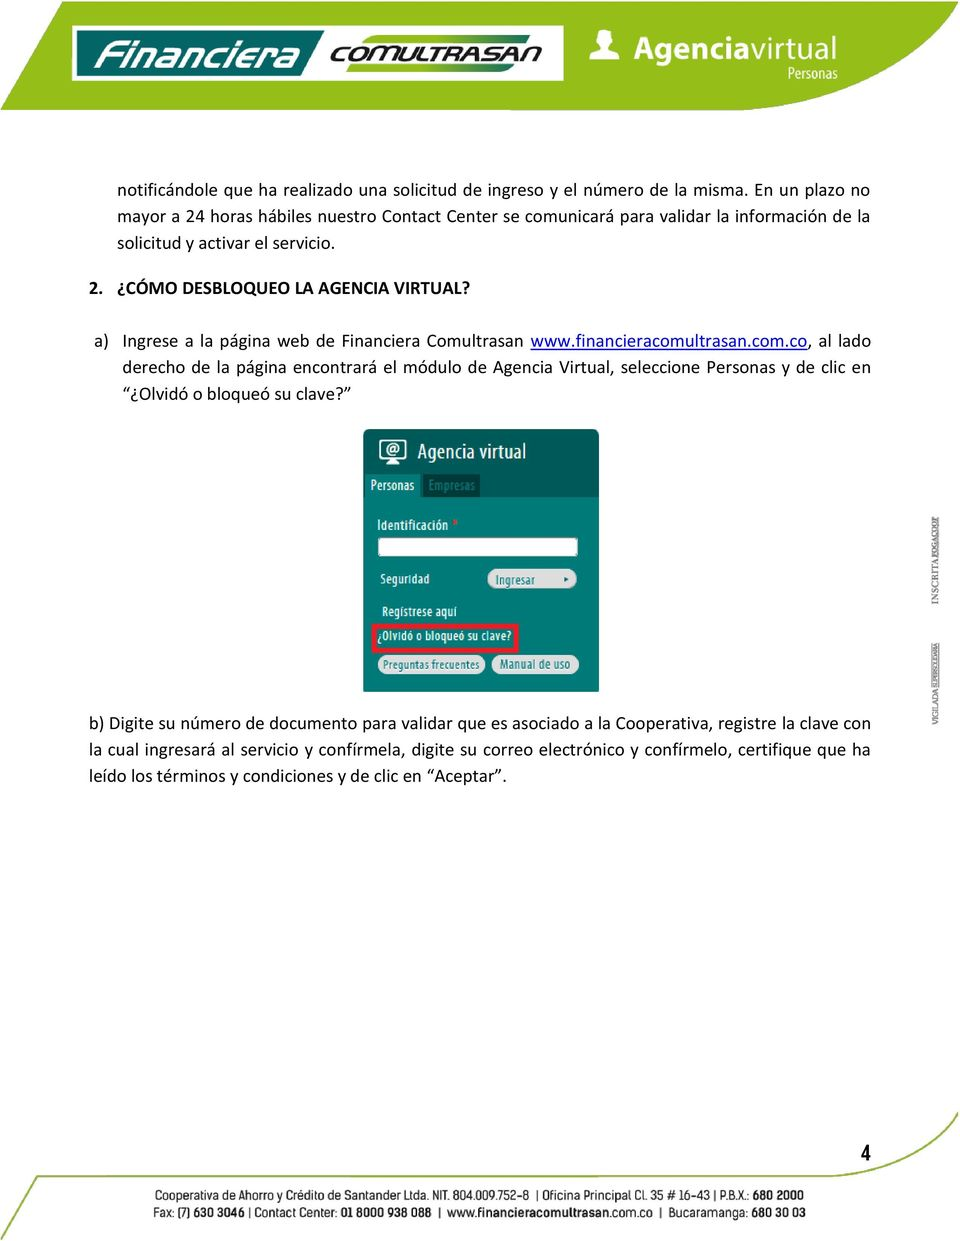 a) Ingrese a la página web de Financiera Comultrasan www.financieracomu